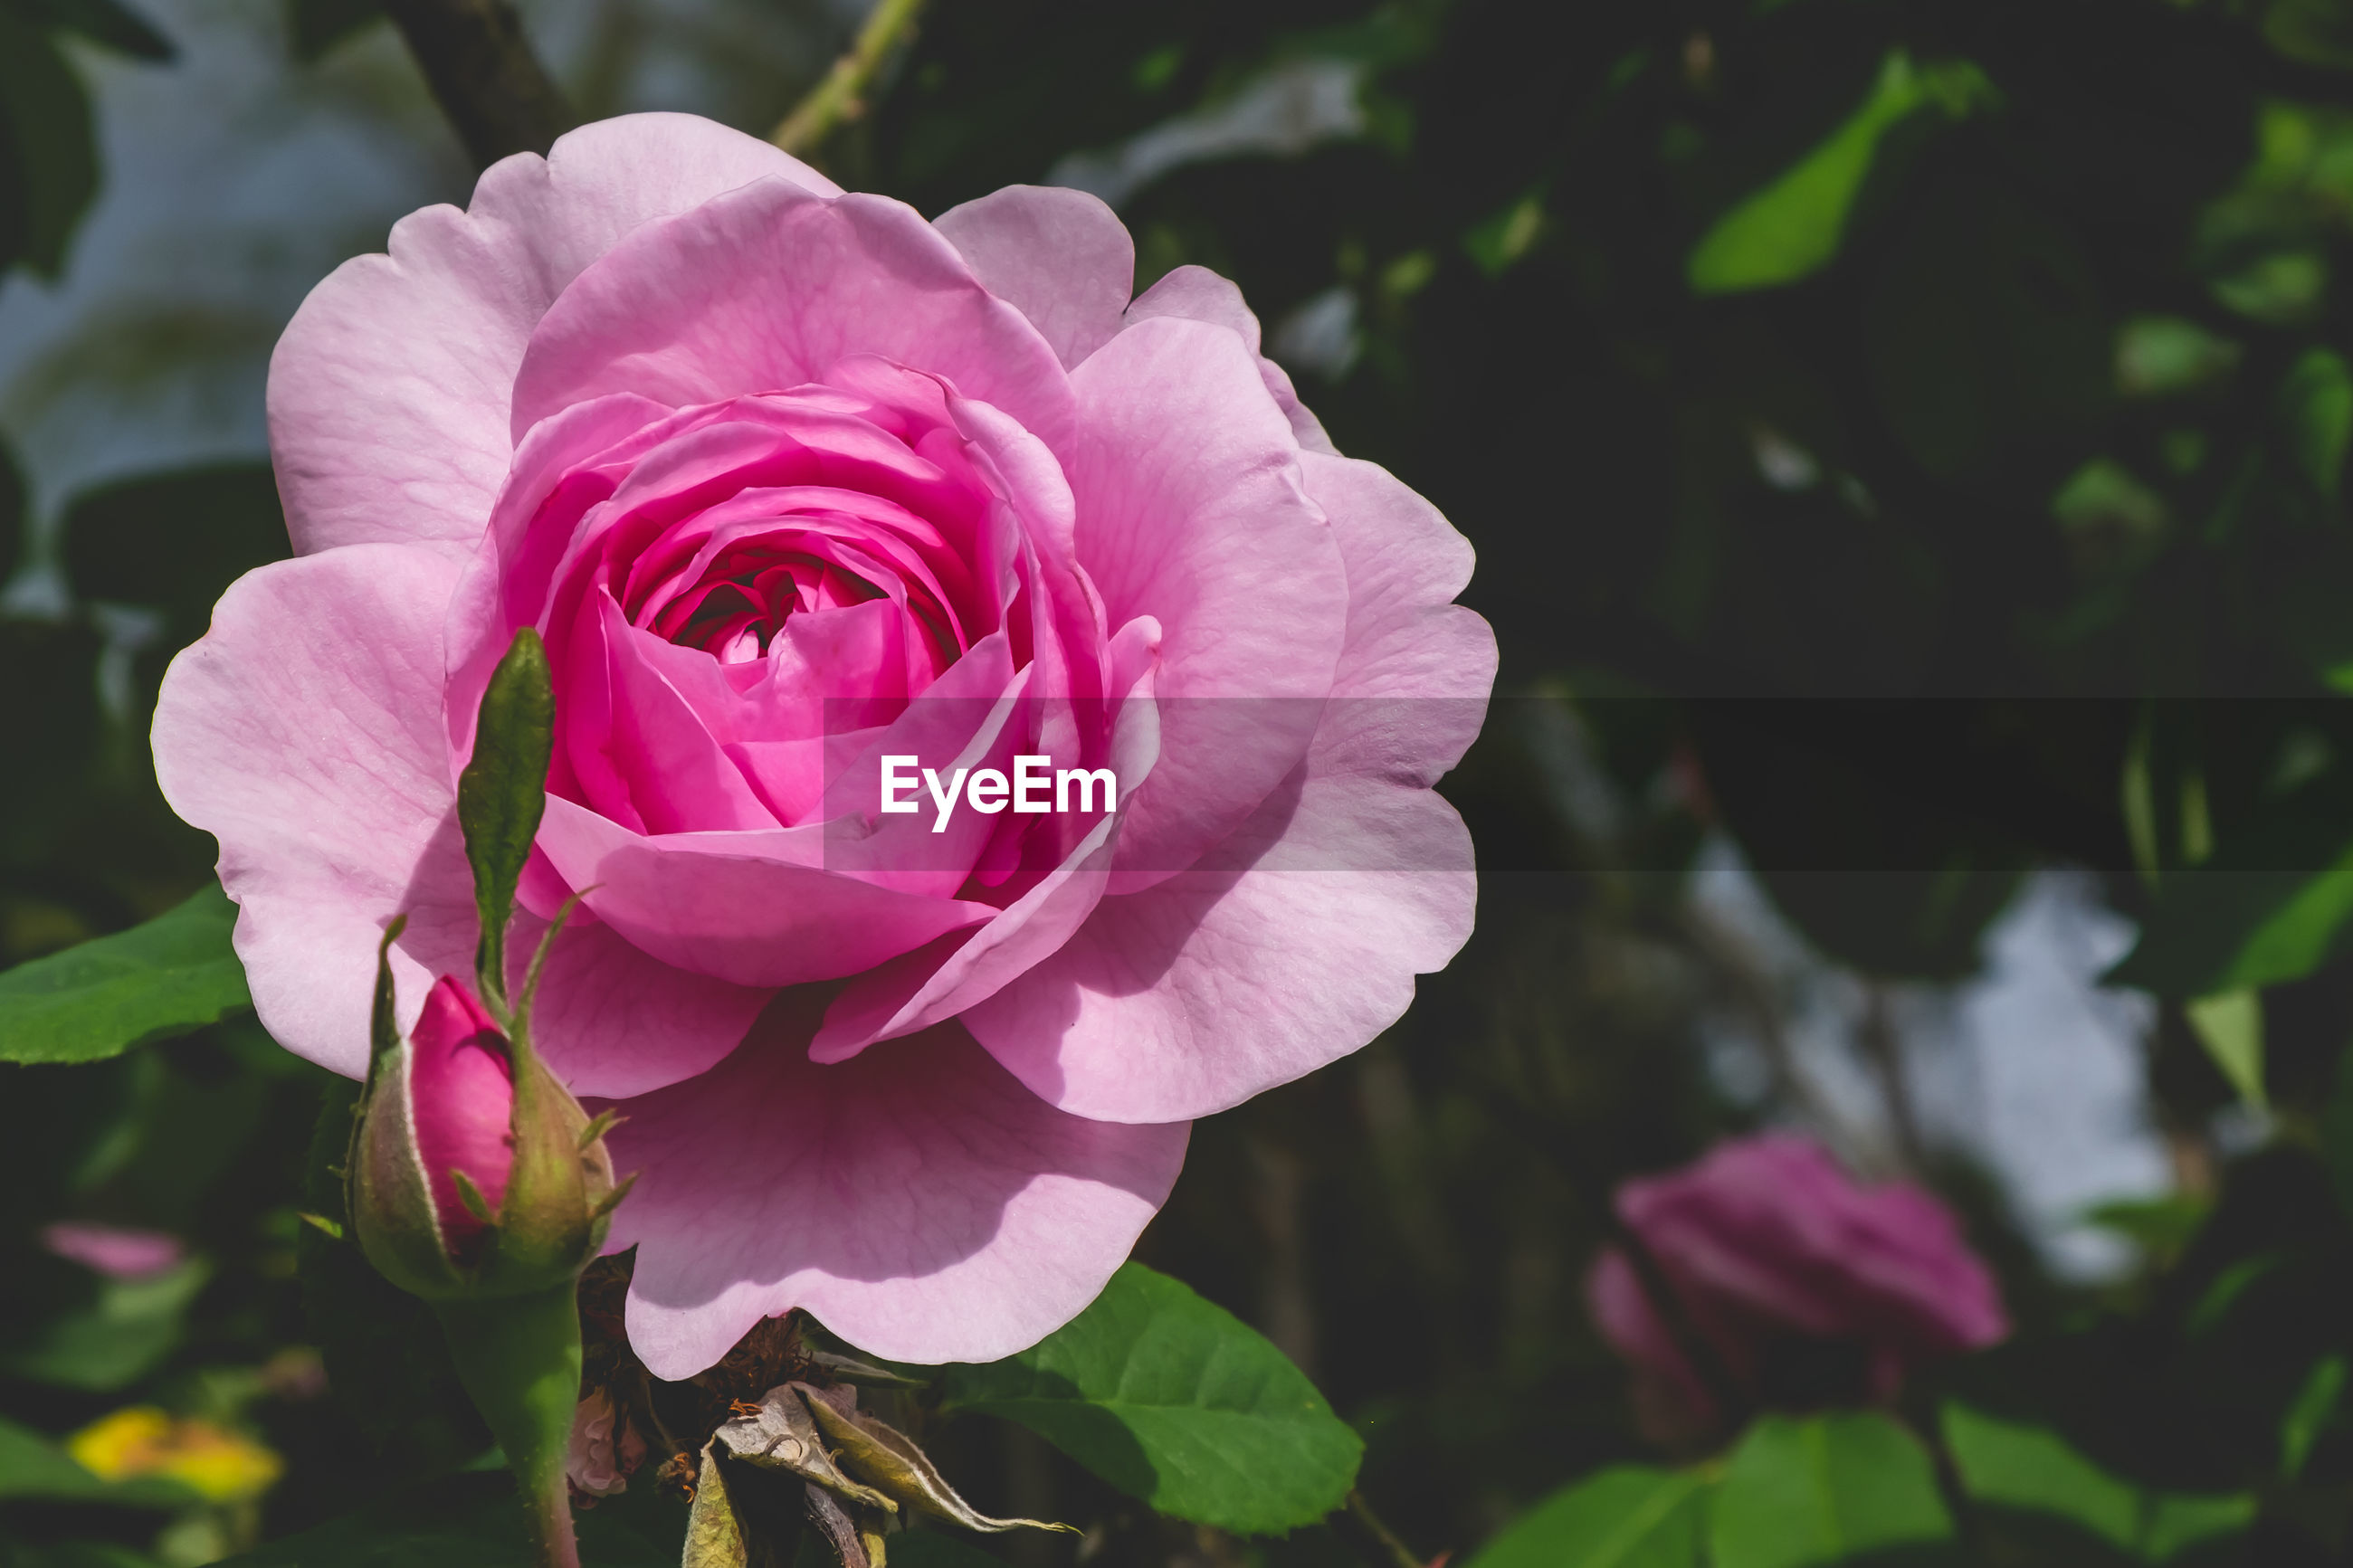 CLOSE-UP OF PINK ROSE AND PLANT